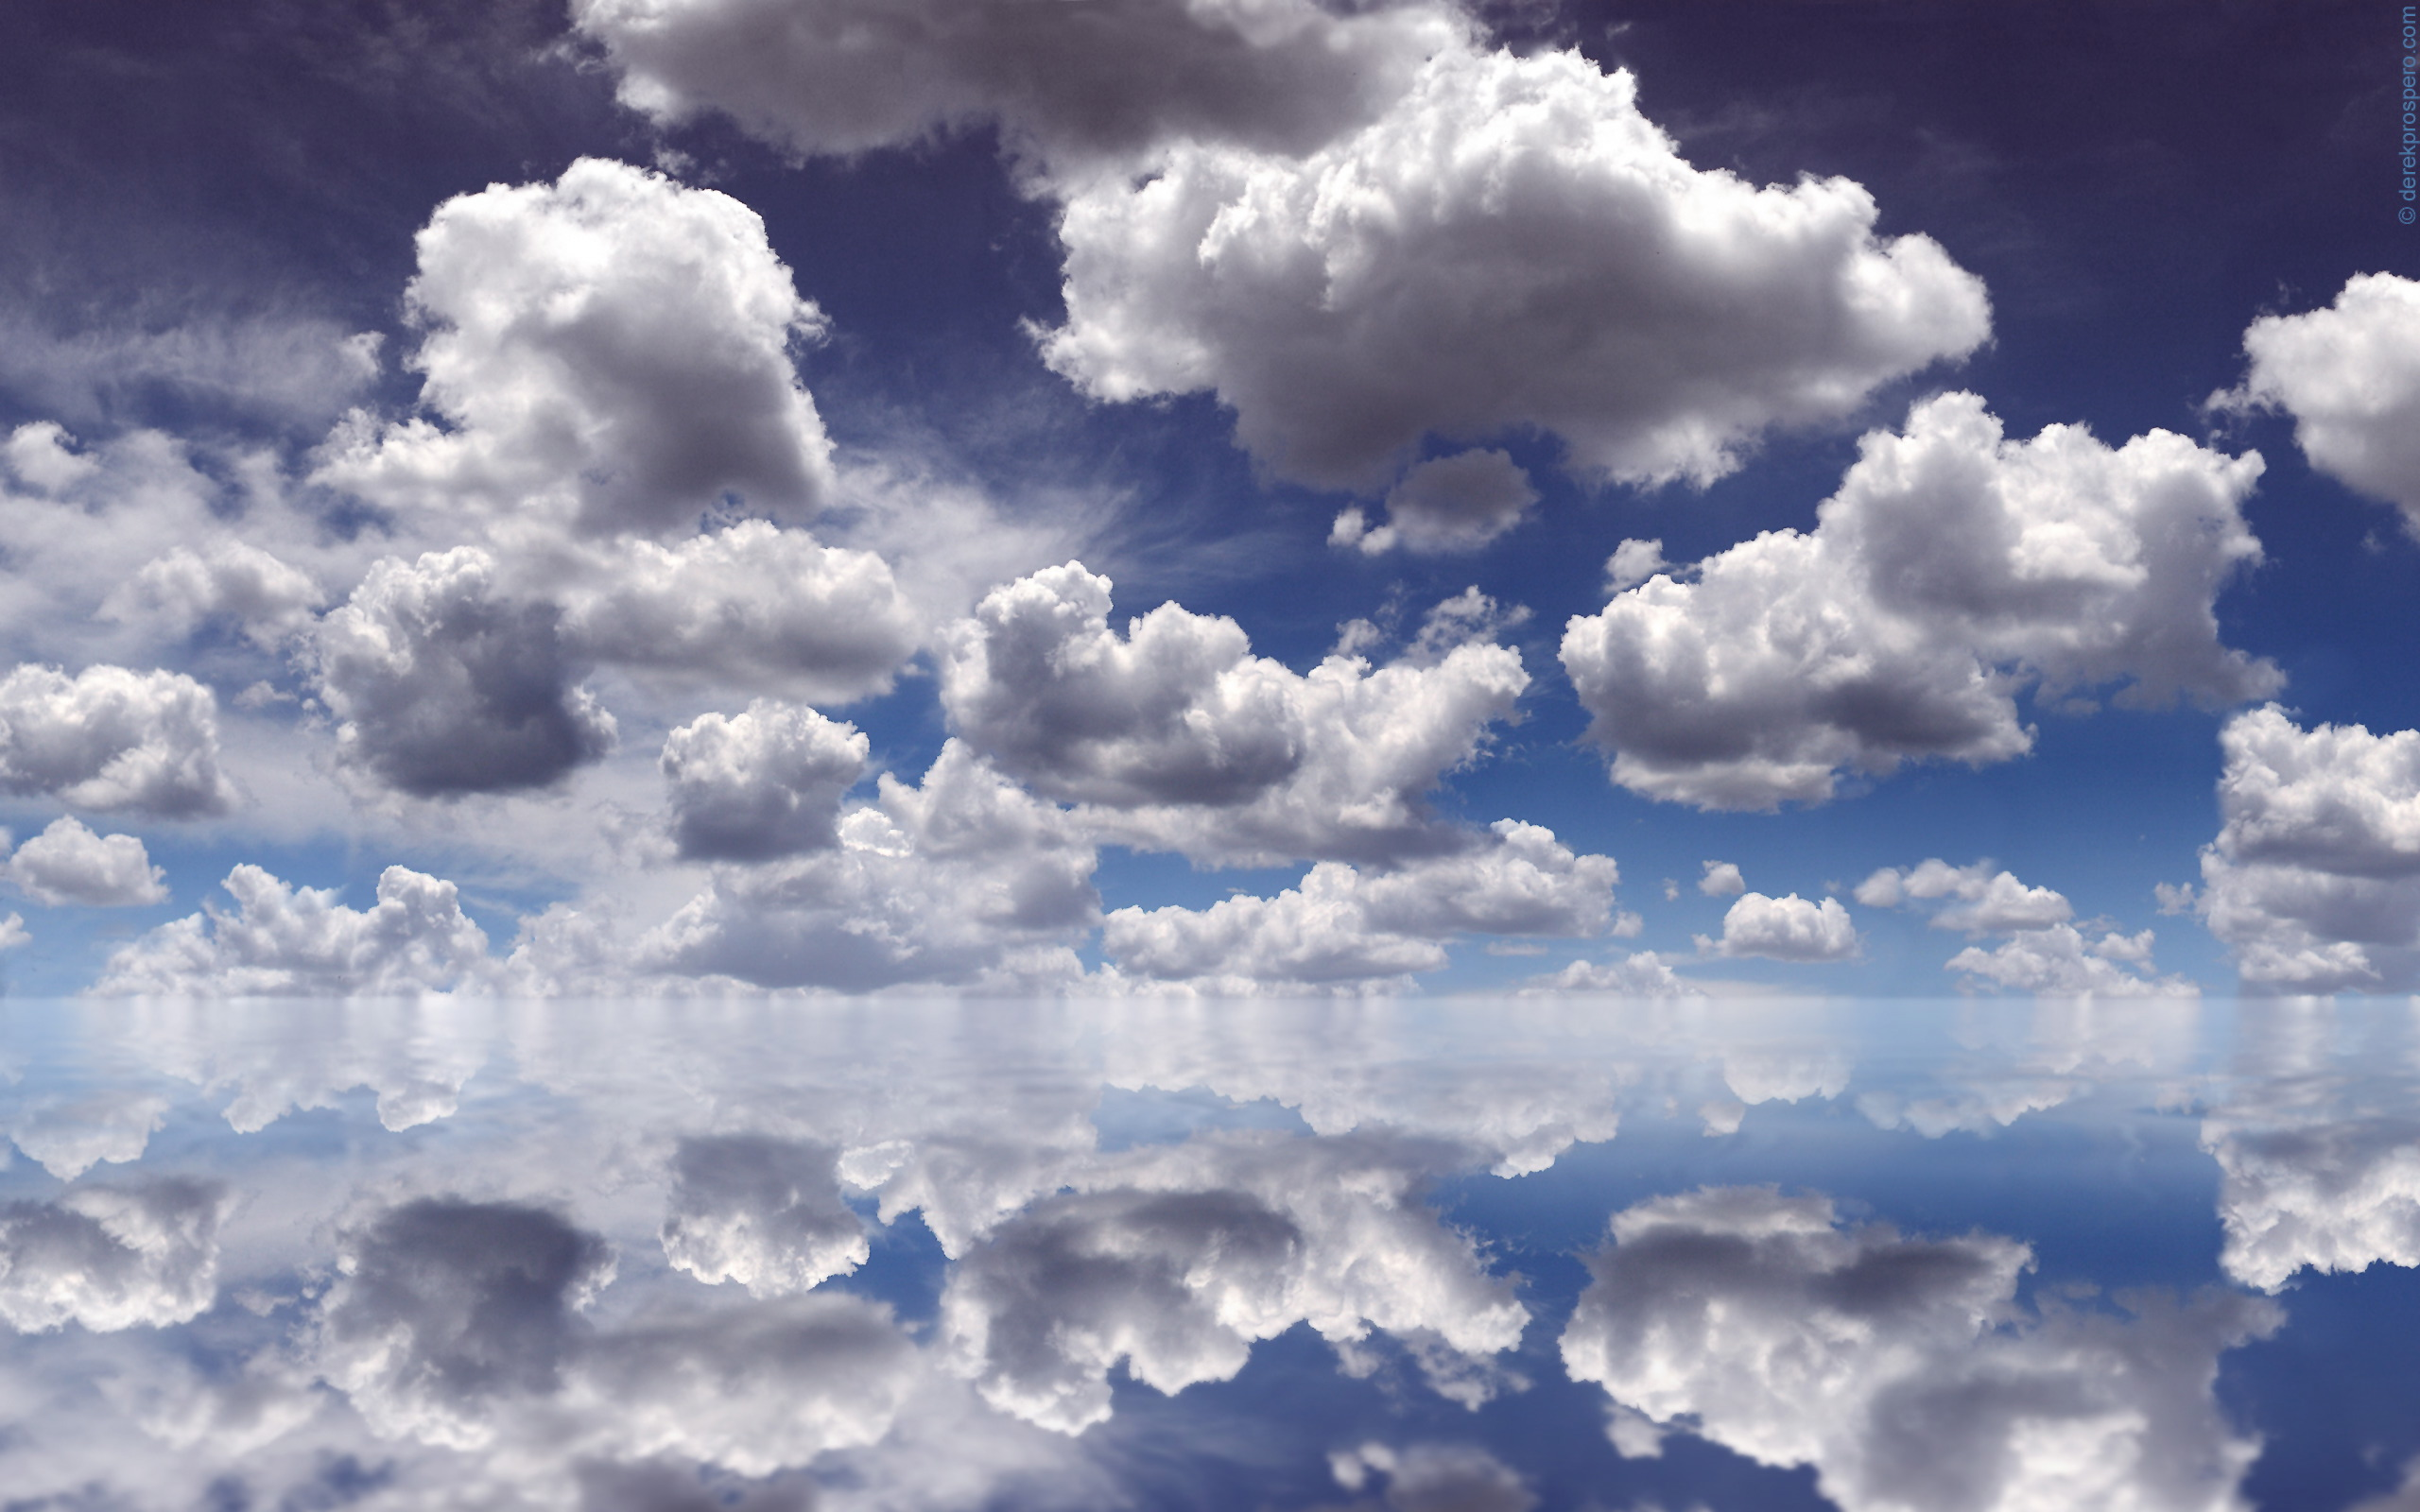 Clouds over water full hd wallpaper and background image for Cloud wallpaper